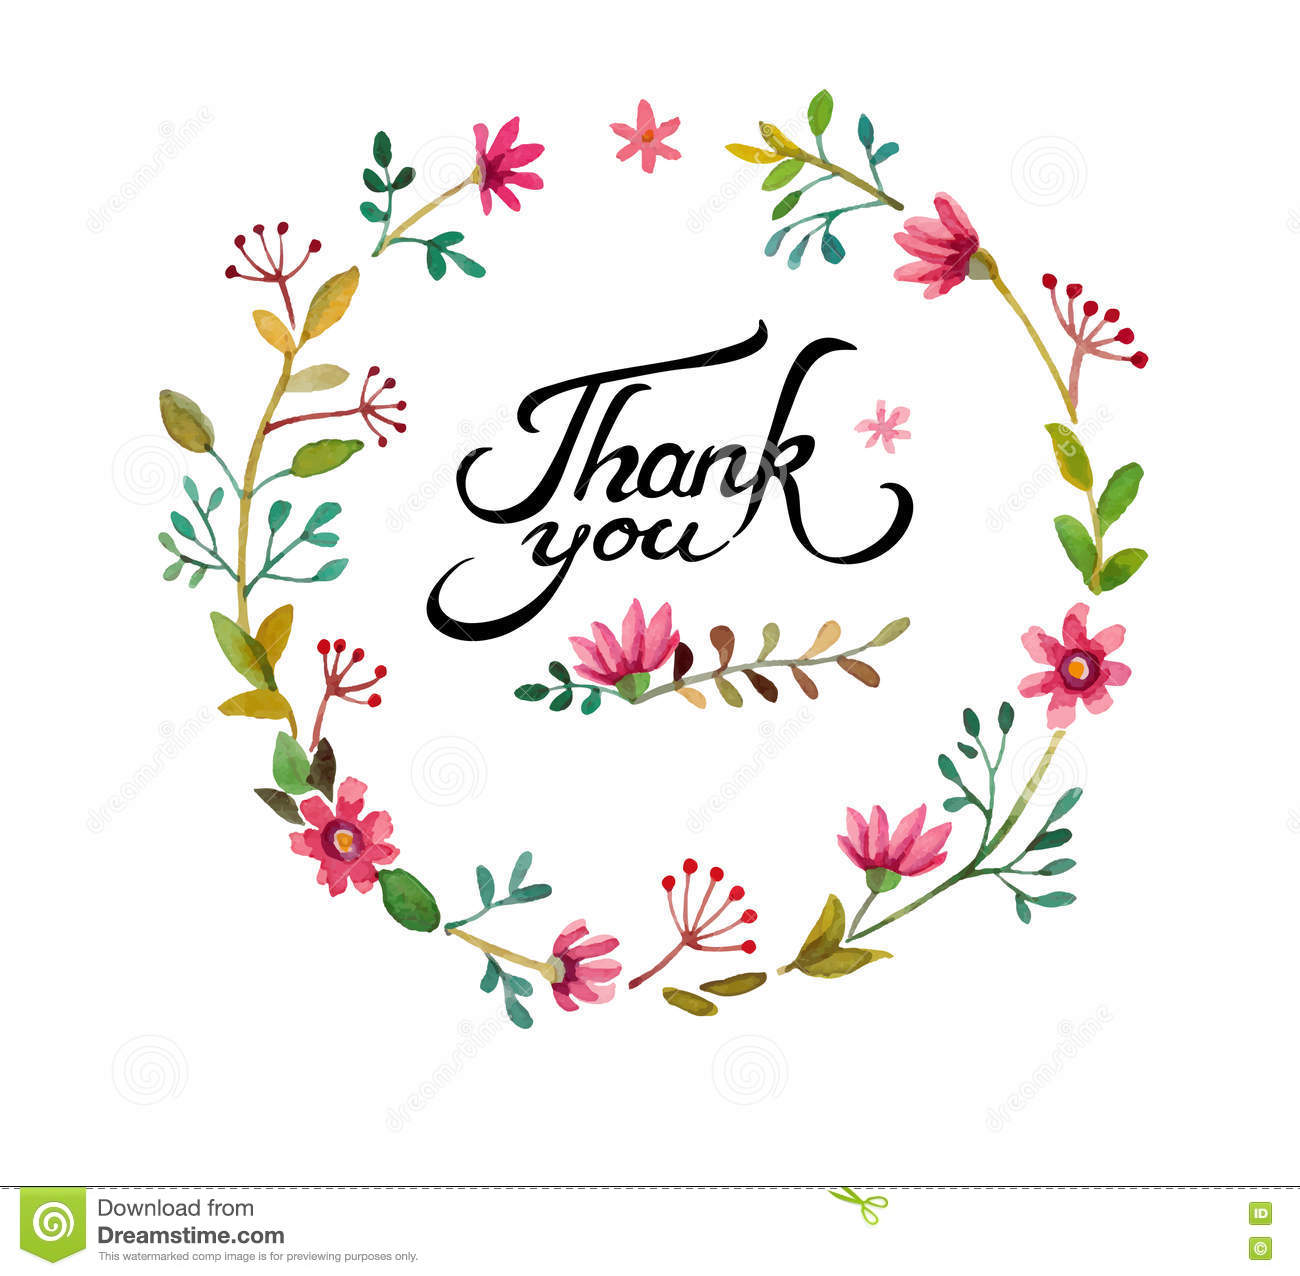 Thank you card layout a thank you customer experience consulting spiritdancerdesigns Choice Image